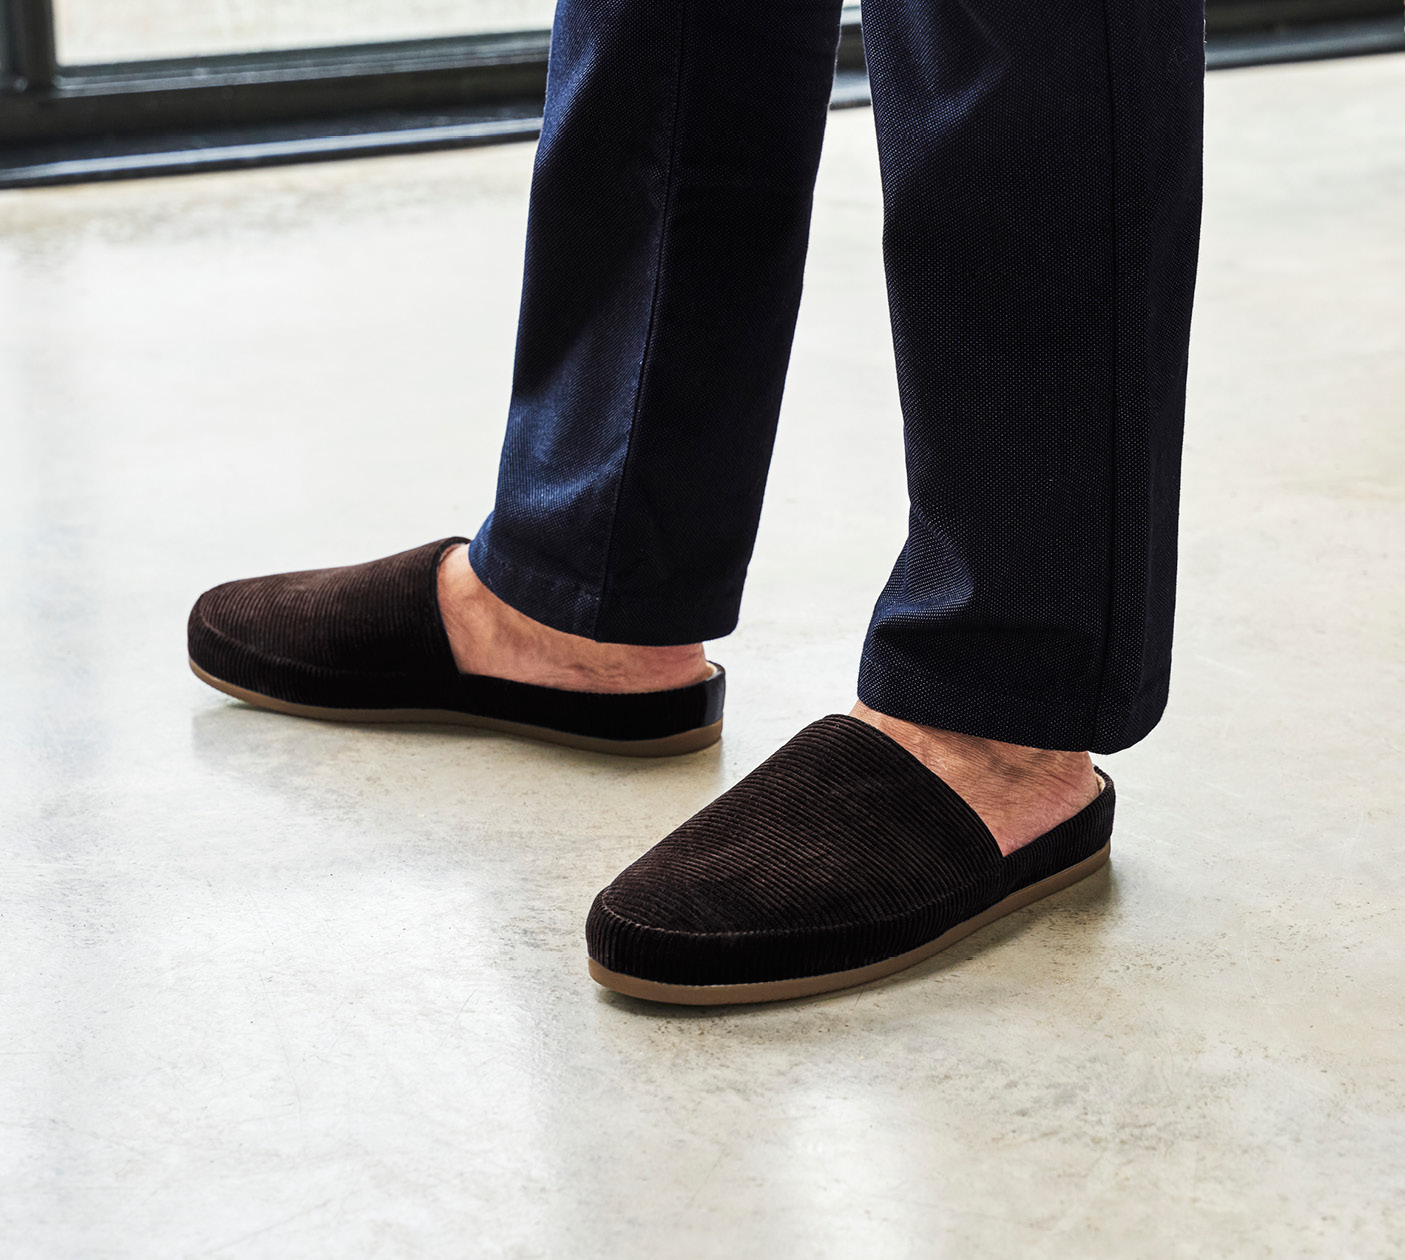 Brown Slippers in Corduroy - Mens Slippers